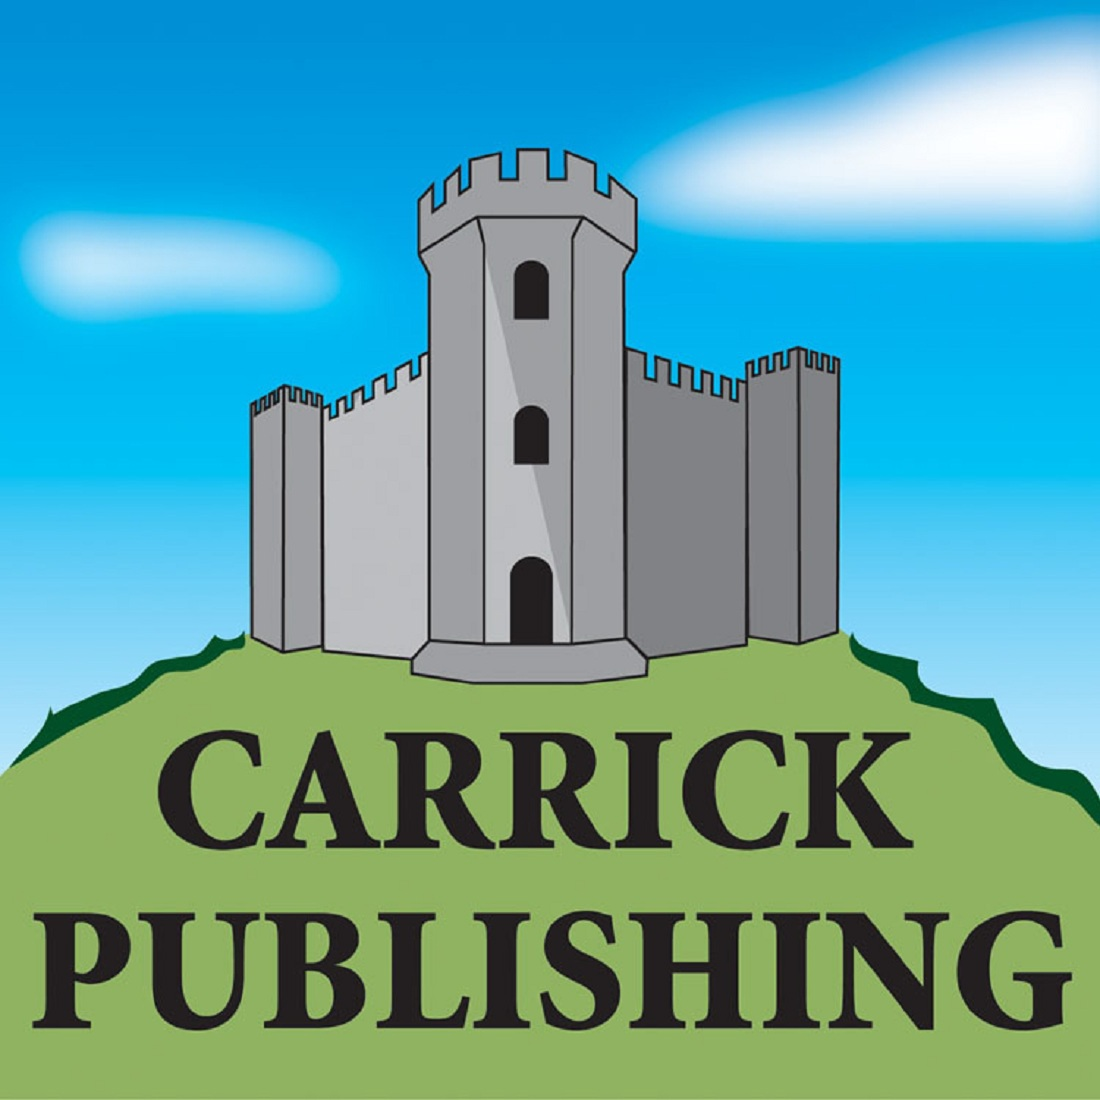 Carrick Publishing